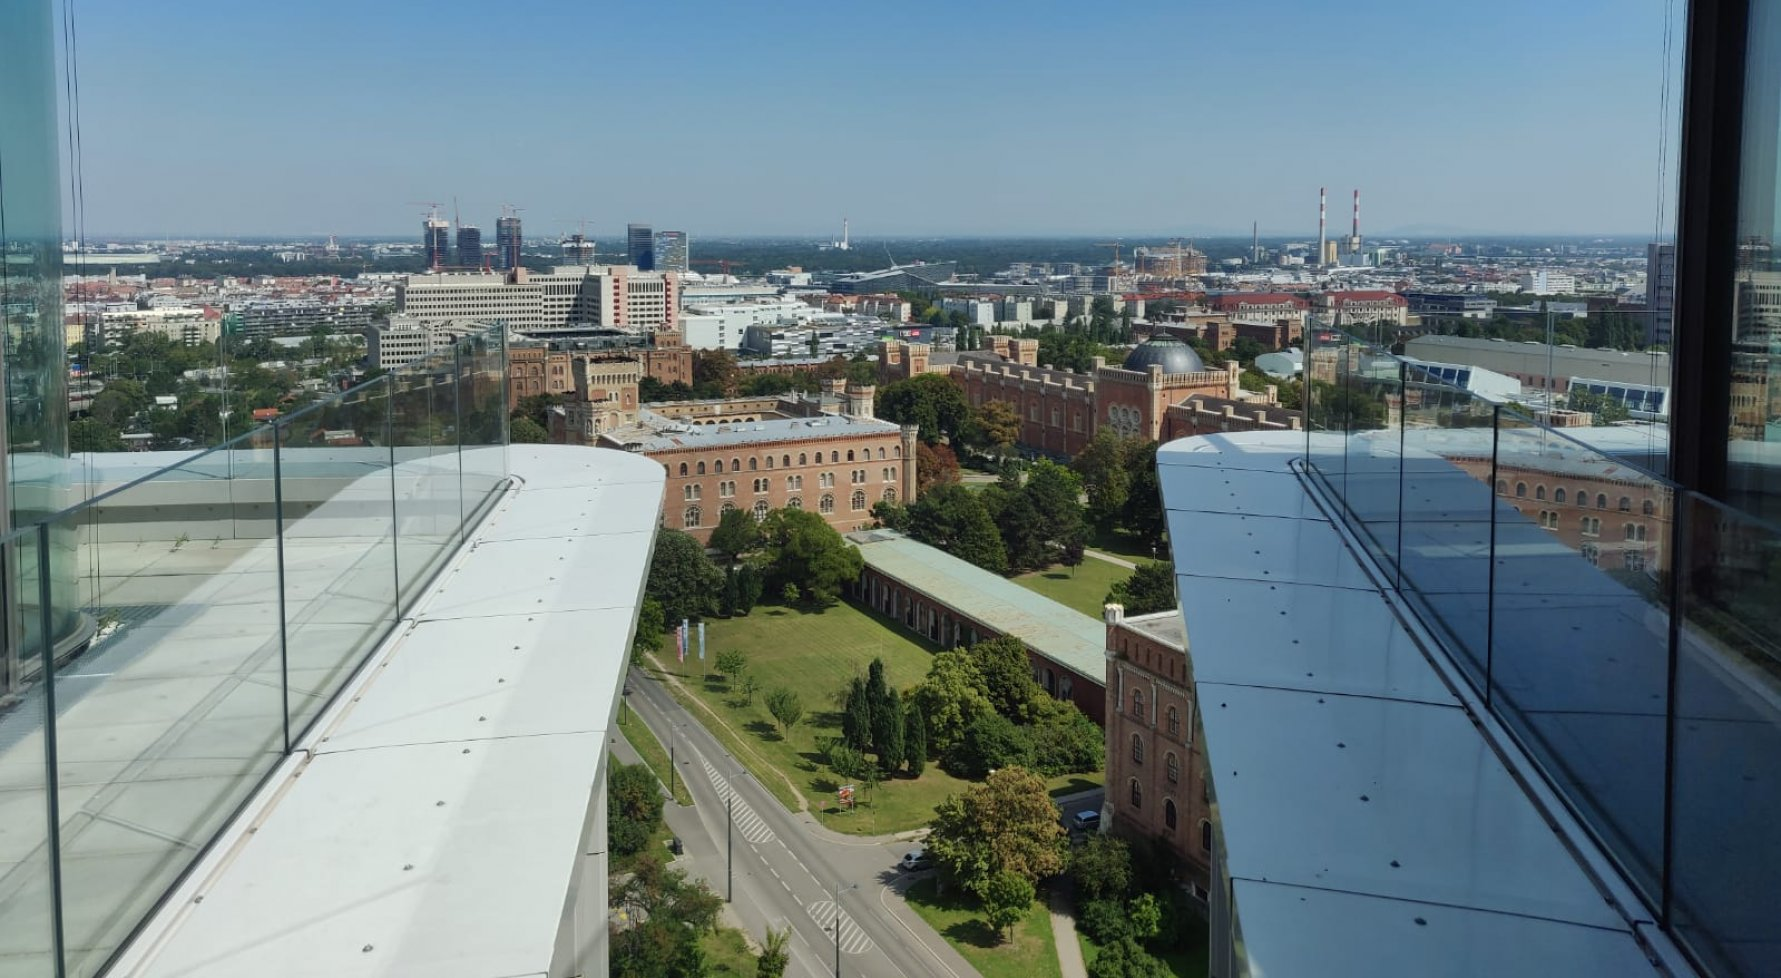 Property in 1110 Wien, 10. Bezirk: An oasis with views over Vienna - picture 1